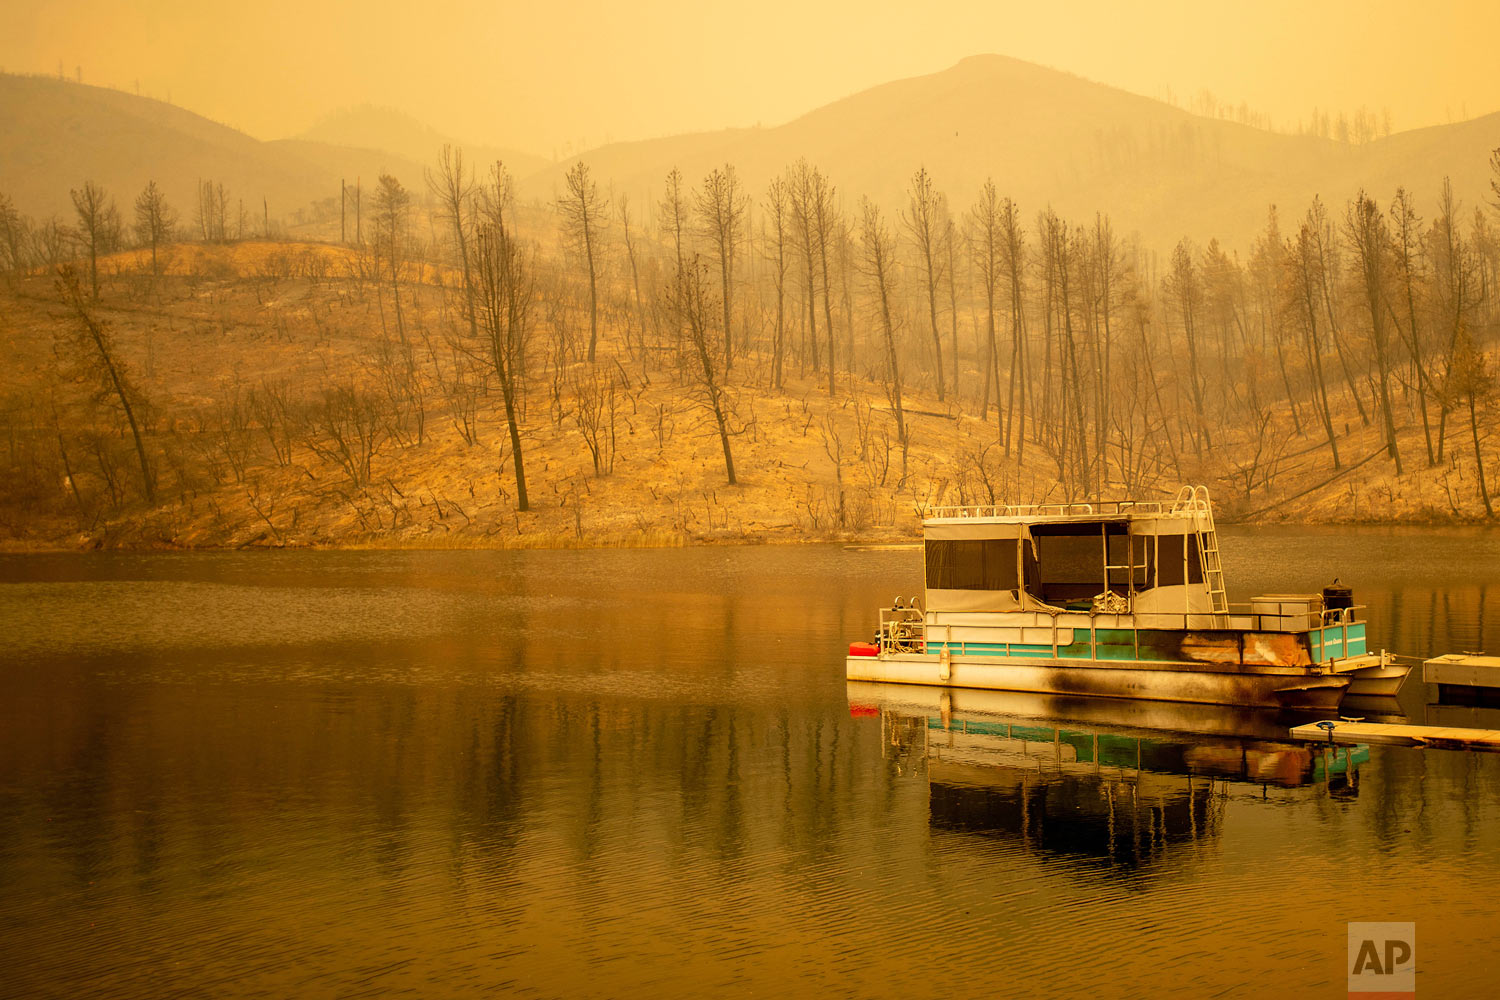 A boat scorched by the Carr Fire floats on Whiskeytown Lake in Whiskeytown, Calif., on Friday, July 27, 2018. The flames moved so fast that firefighters working in oven-like temperatures and bone-dry conditions had to drop efforts to battle the blaze at one point to help people escape. (AP Photo/Noah Berger)